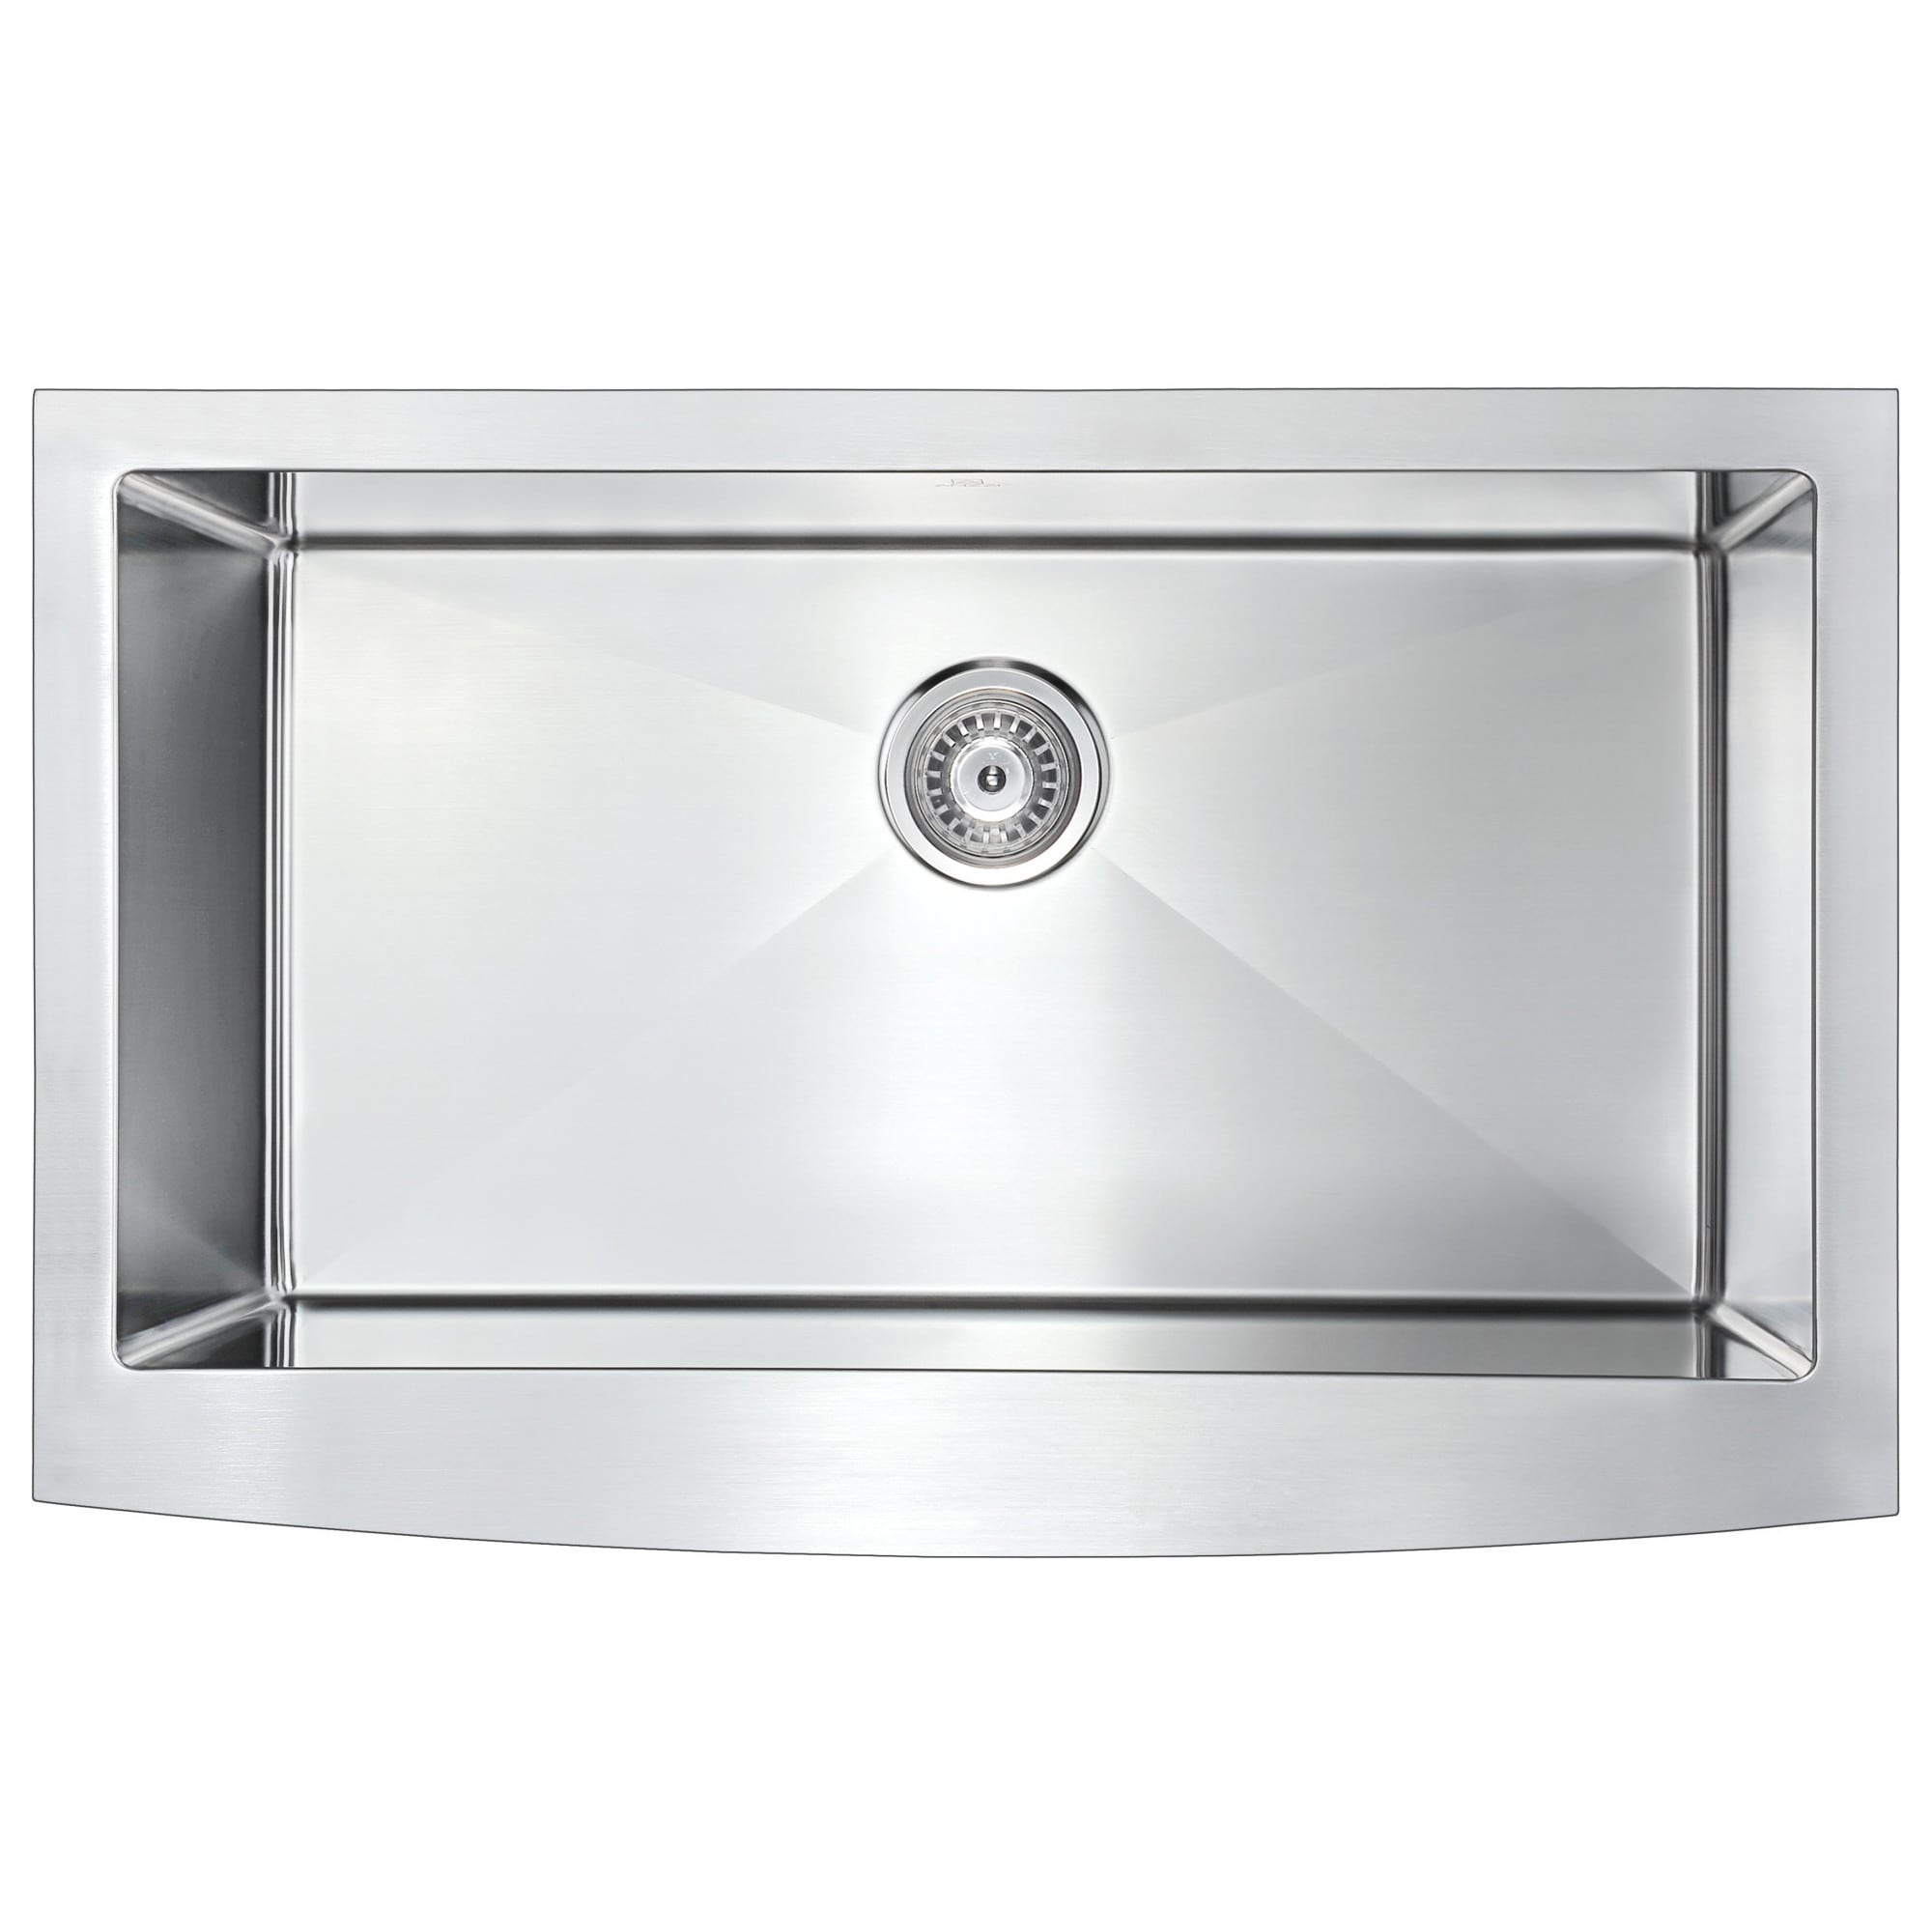 anzzi elysian farmhouse stainless steel 36 inch undermount kitchen rh overstock com Farmhouse Kitchen Sinks Stainless 36 inch double bowl undermount kitchen sink